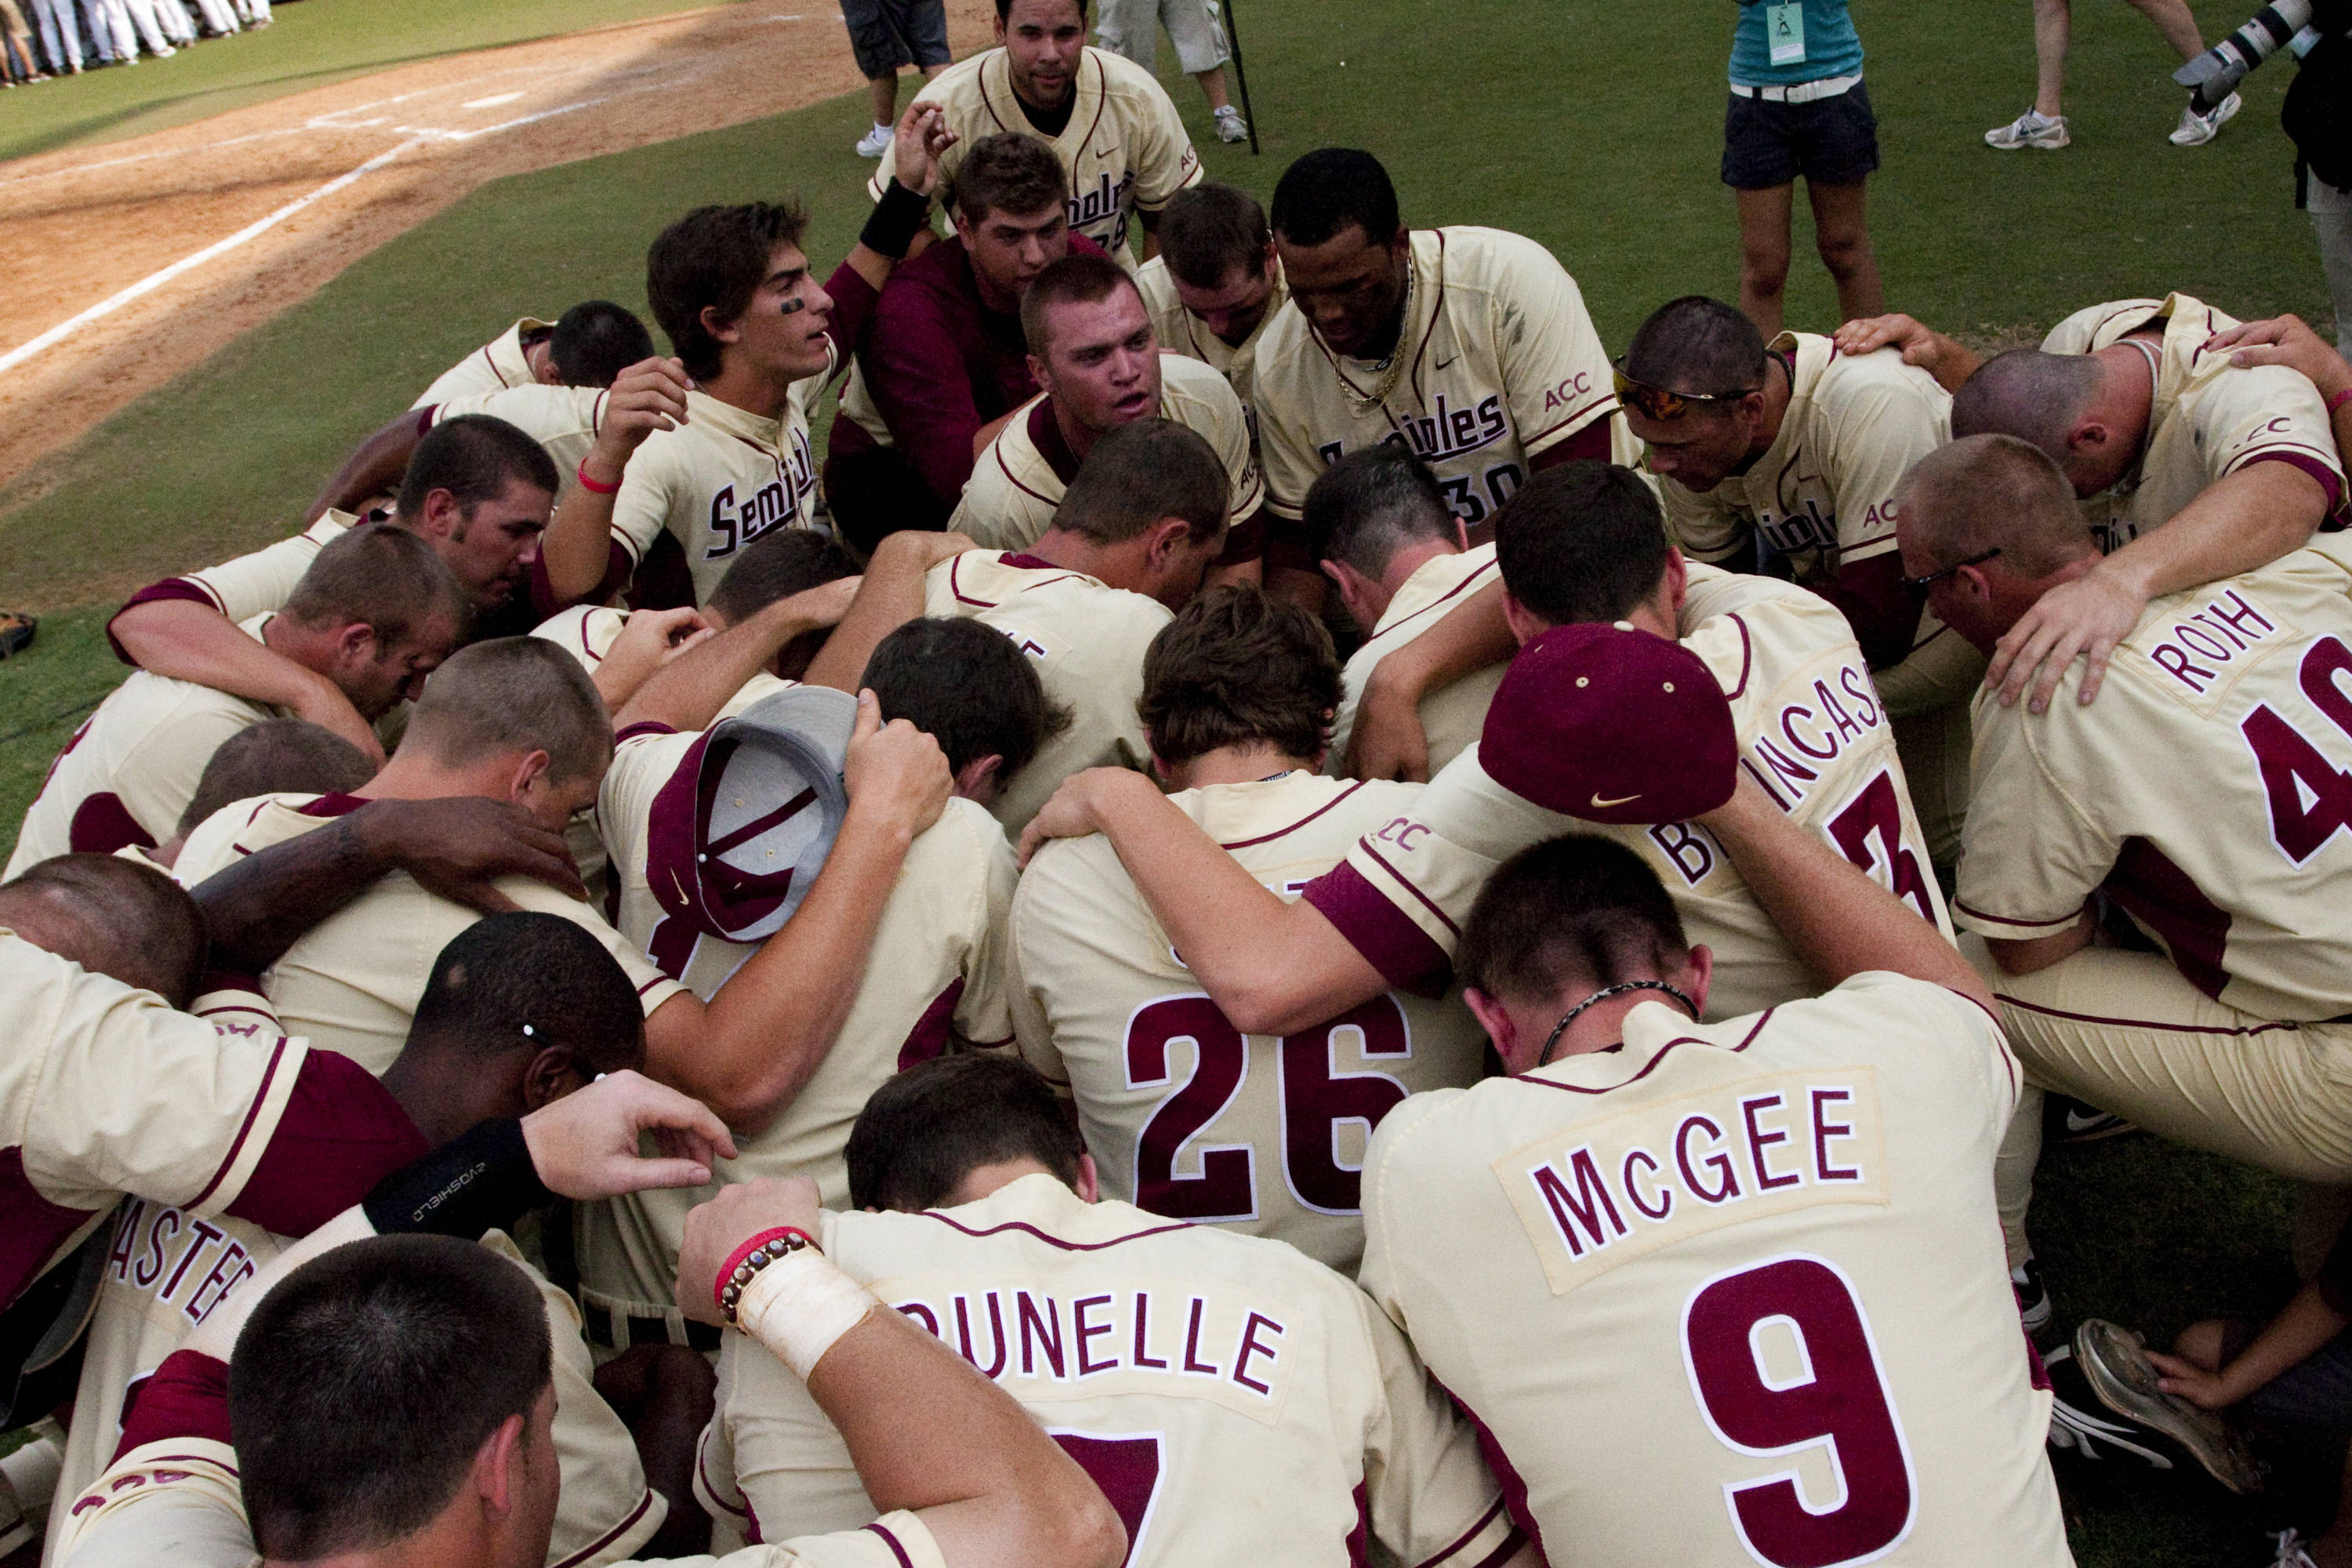 The team huddles on the field after winning game three against Vanderbilt.